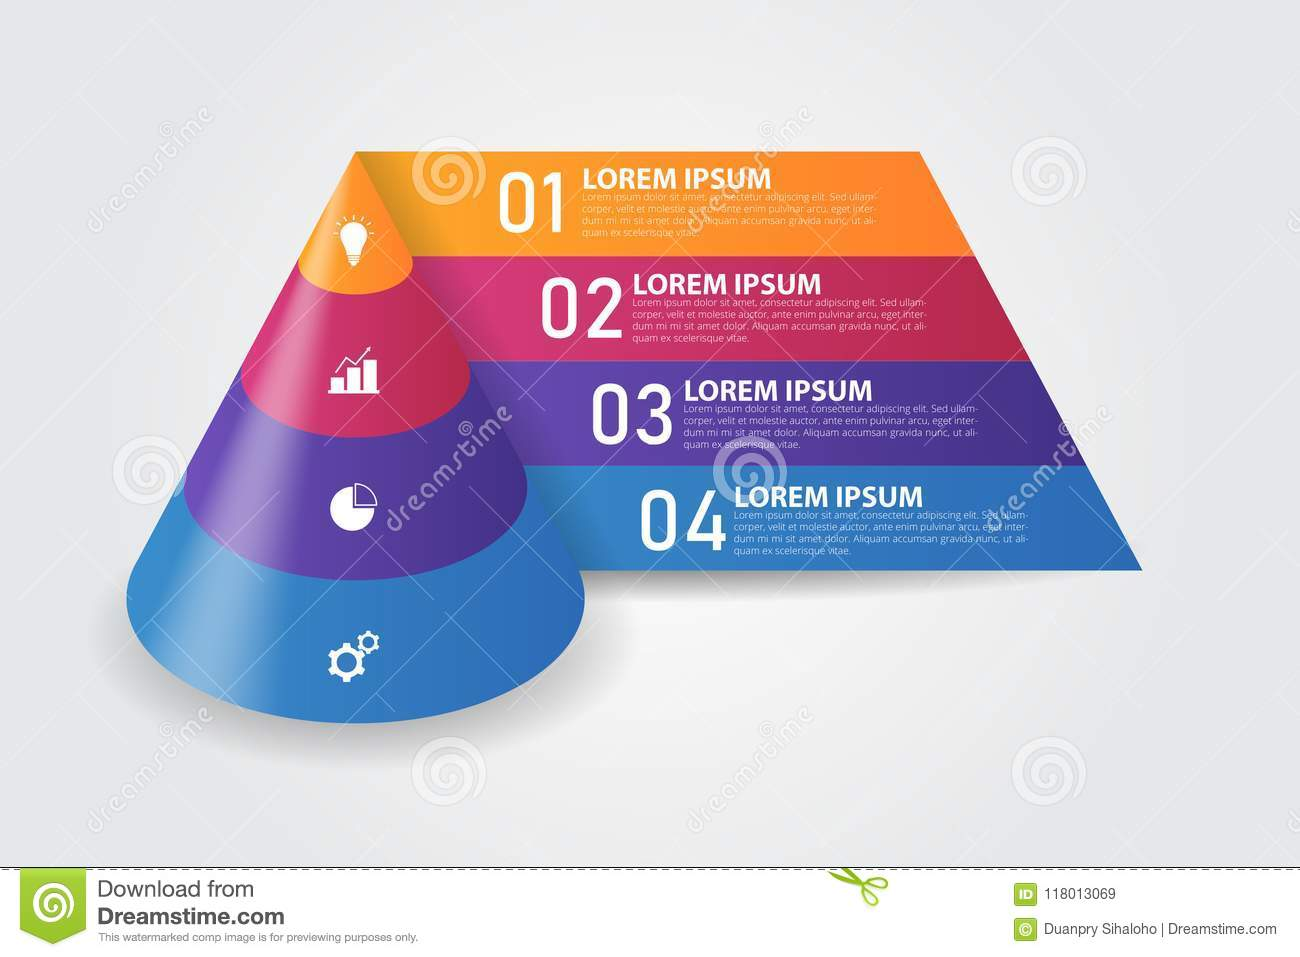 3D Cone Pyramid Infographics Template For Business Education Web Design Banners Brochures